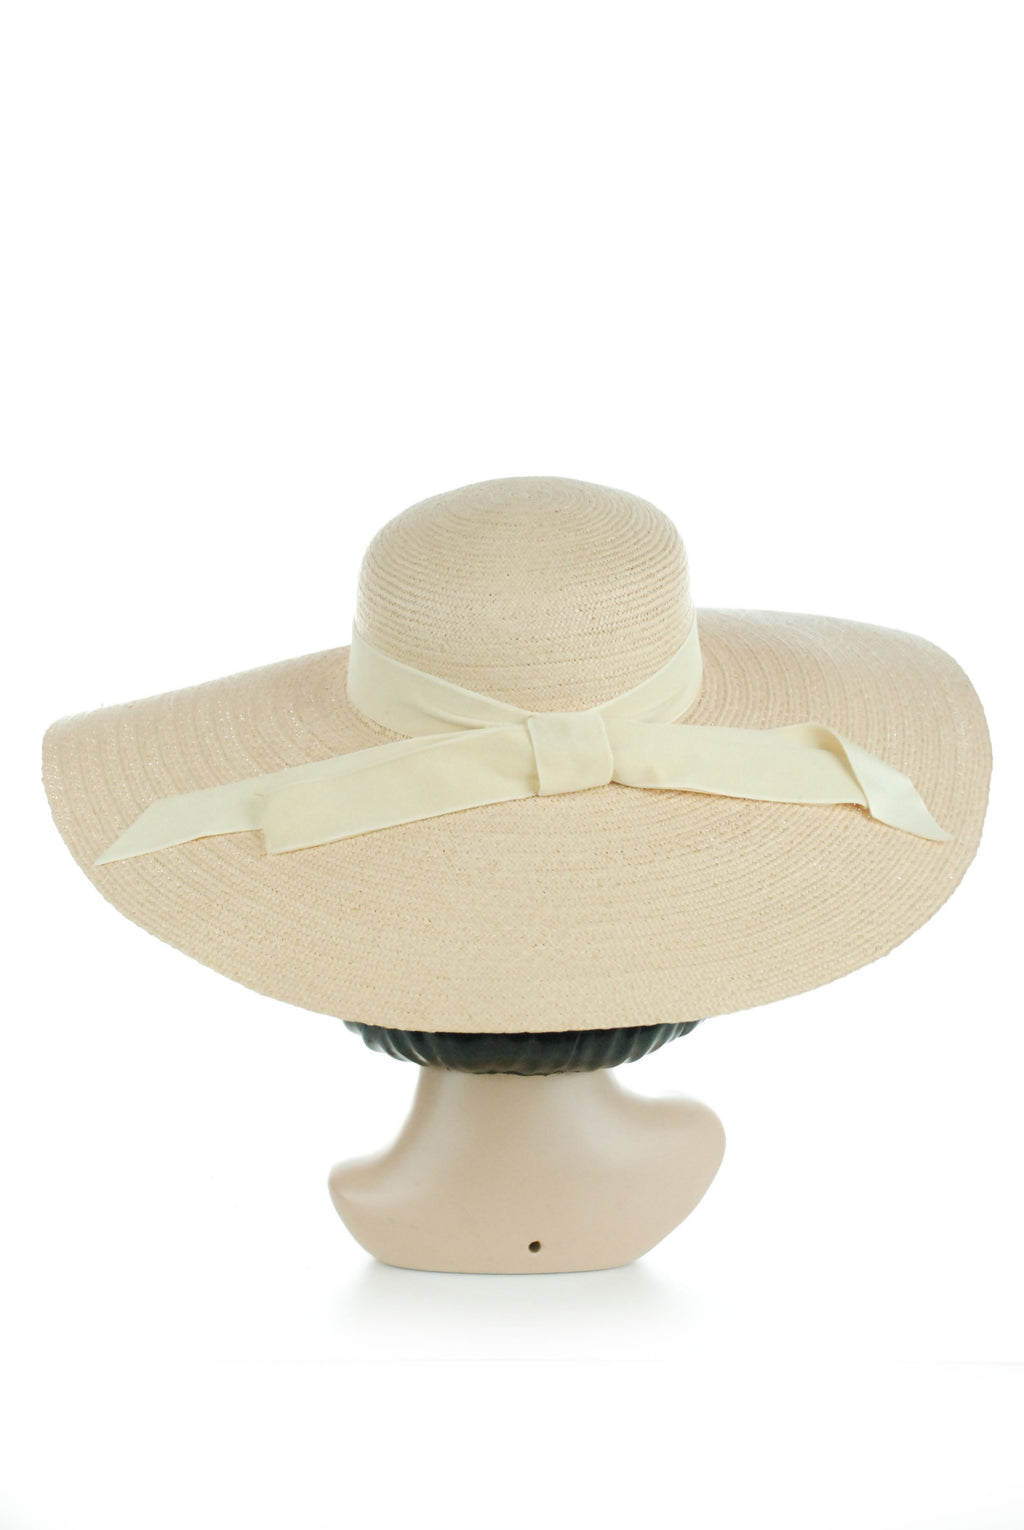 Elegant 1930s Ultra Wide Brimmed Summer Straw Sunhat with Velvet Band